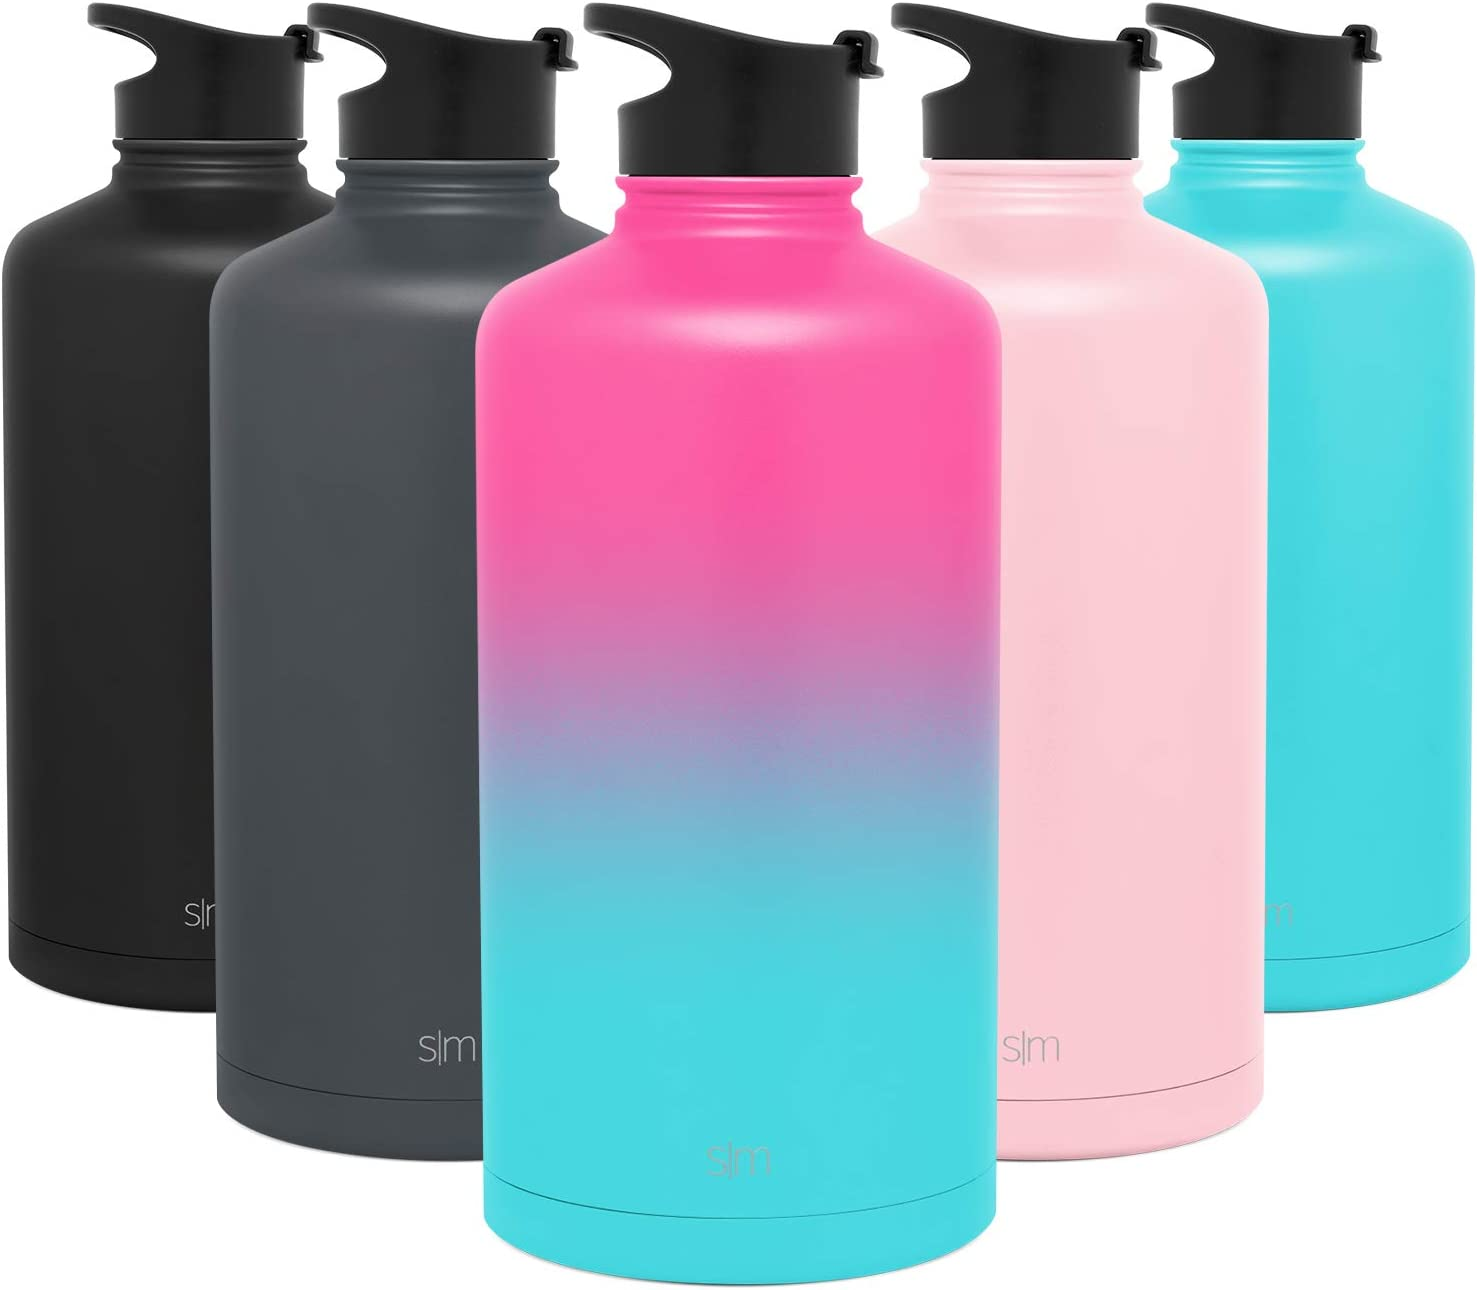 Flip Lid Simple Modern Insulated Water Bottle Large Gallon Reusable Summit Wide Mouth Stainless Steel Thermos Flask Ombre: Sorbet 128oz 1 Gallon